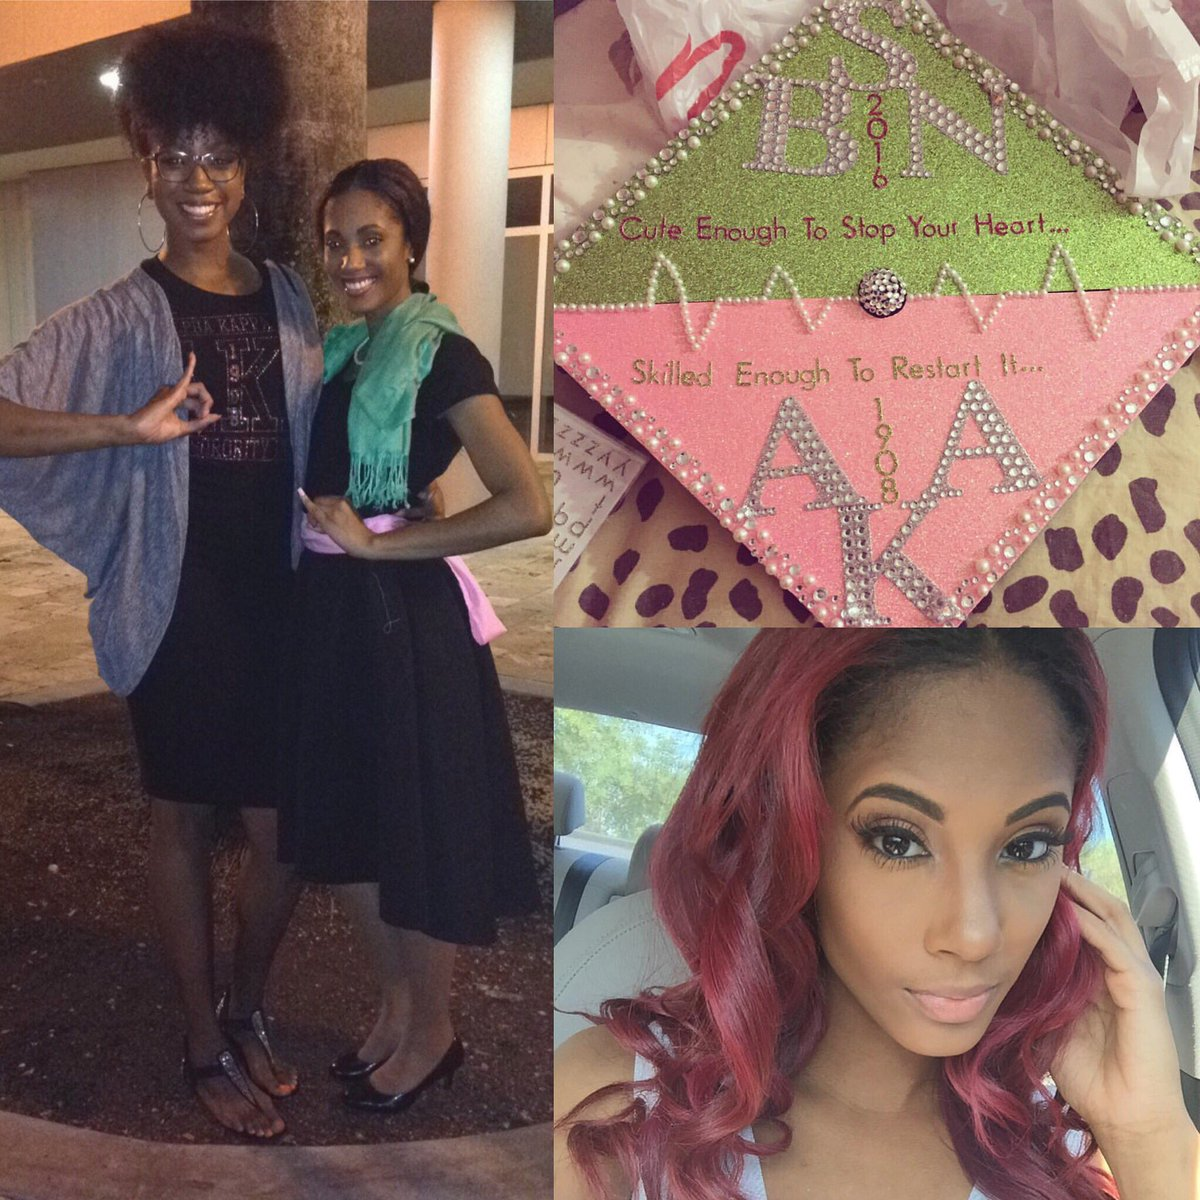 23 Year Old Nursing Graduate Shot And Killed During House Party In Miami Gardens Lipstick Alley